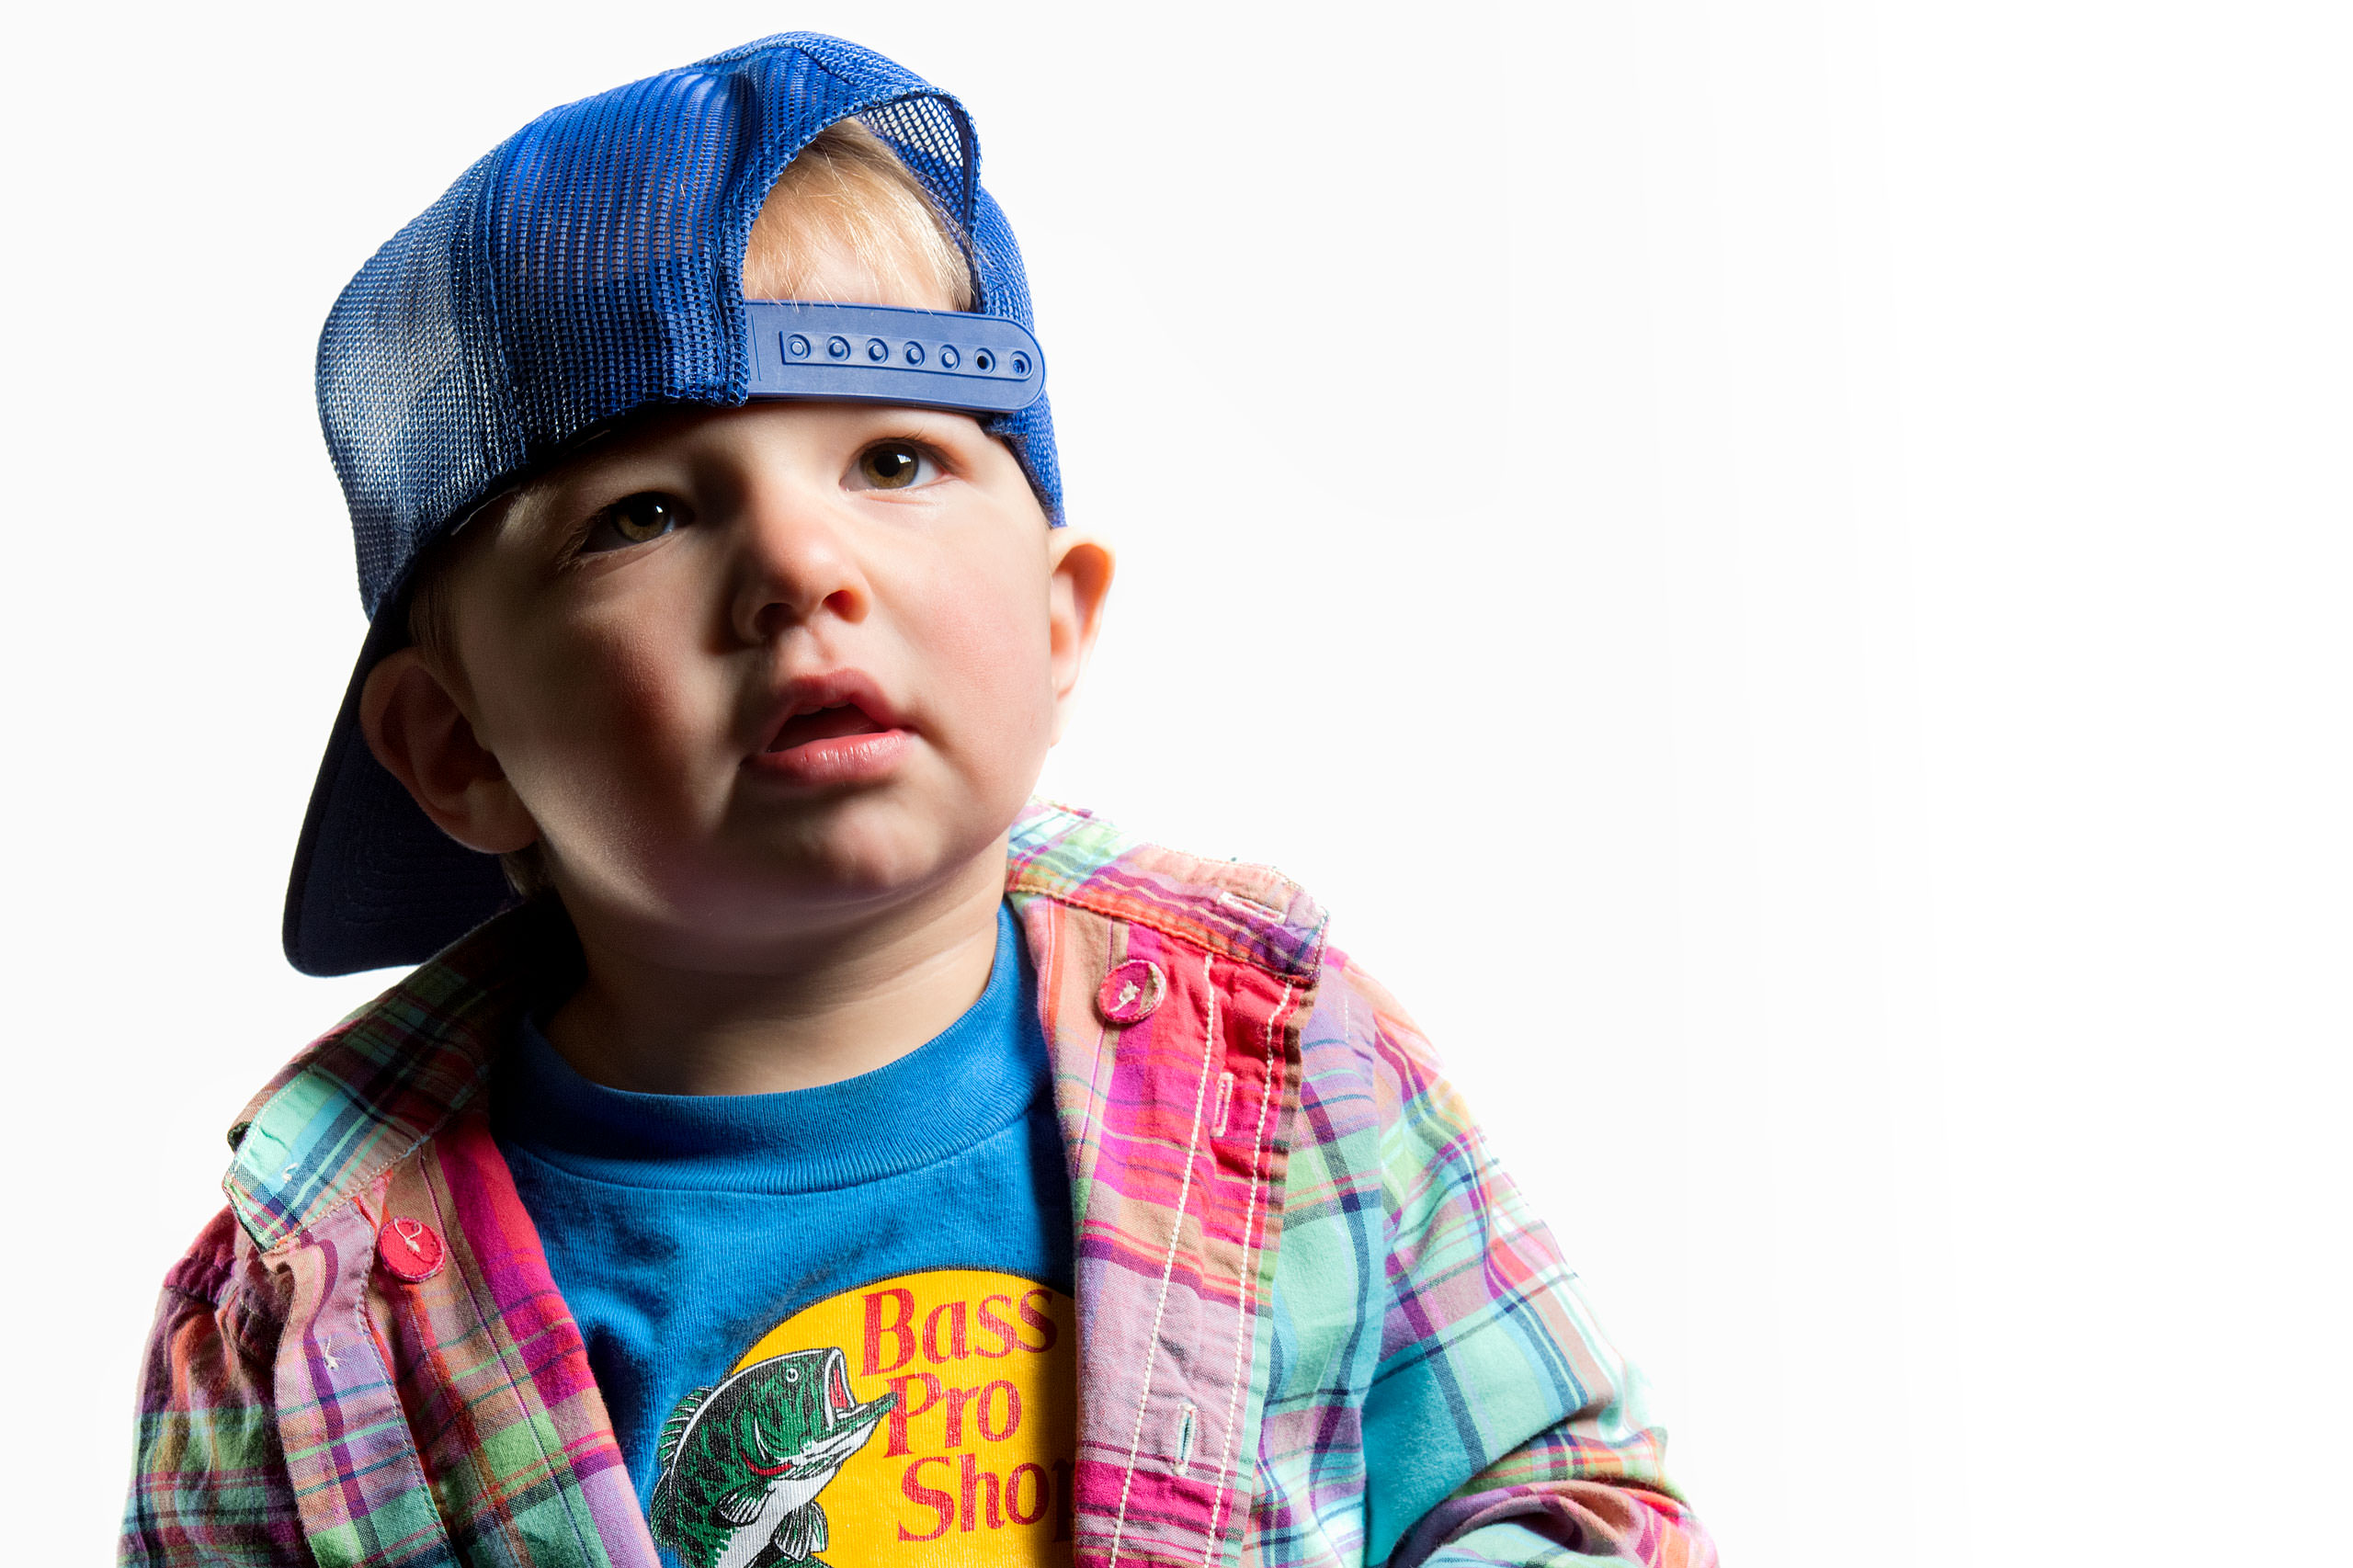 a young boy wearing a backwards blue hat looking up for a calgary portrait studio session by sean leblanc